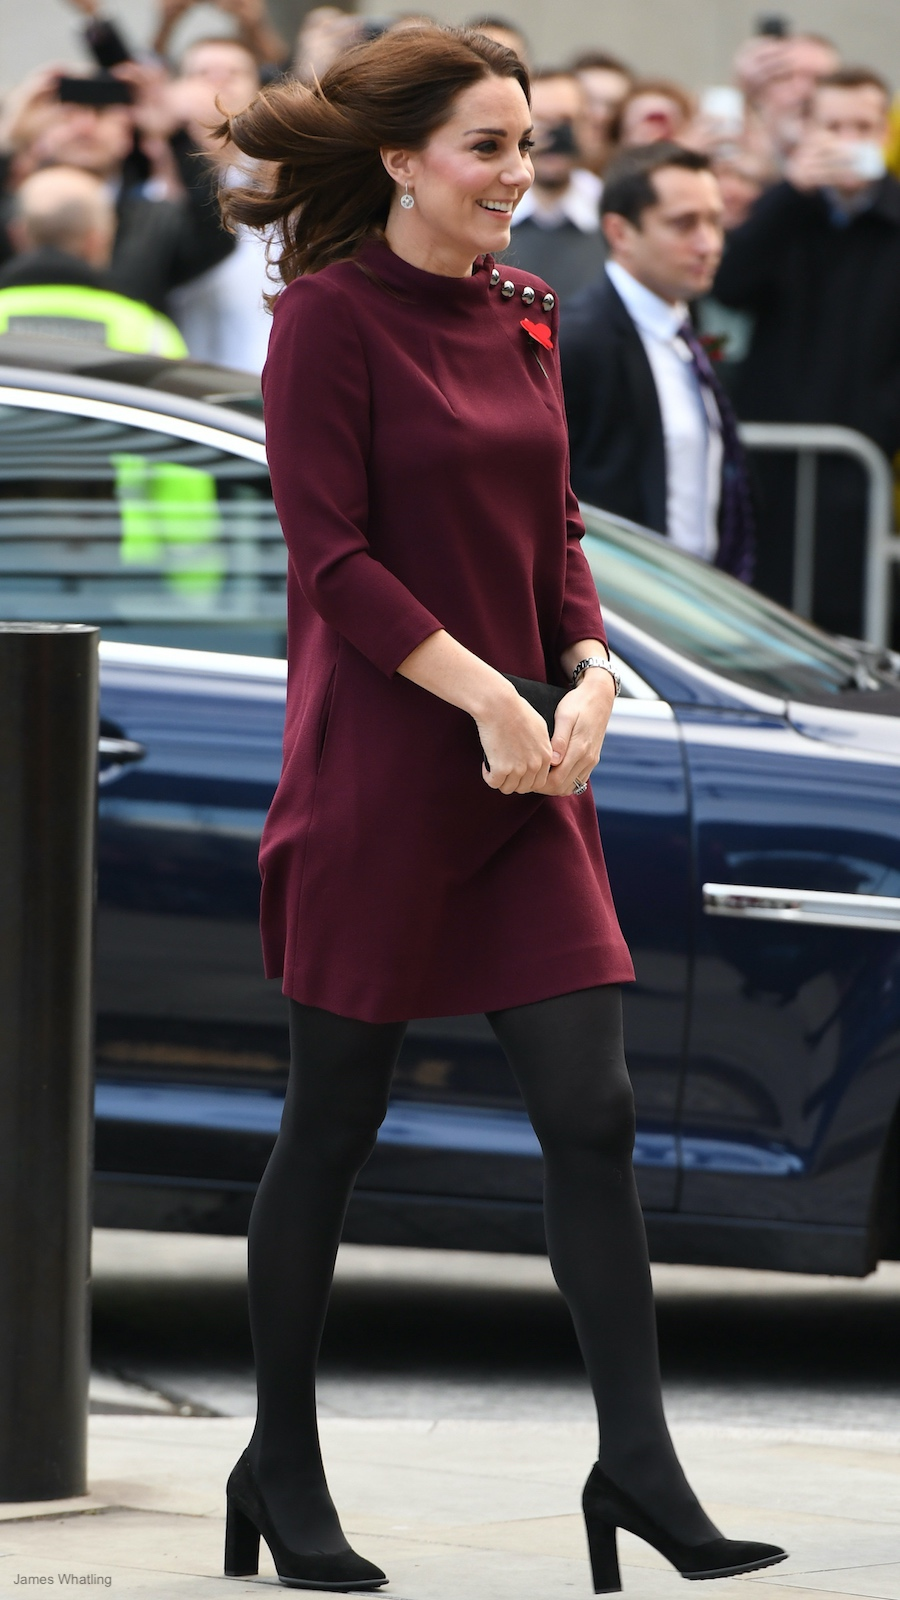 Kate Middleton wearing the Goat Eloise Tunic Dress in Plum